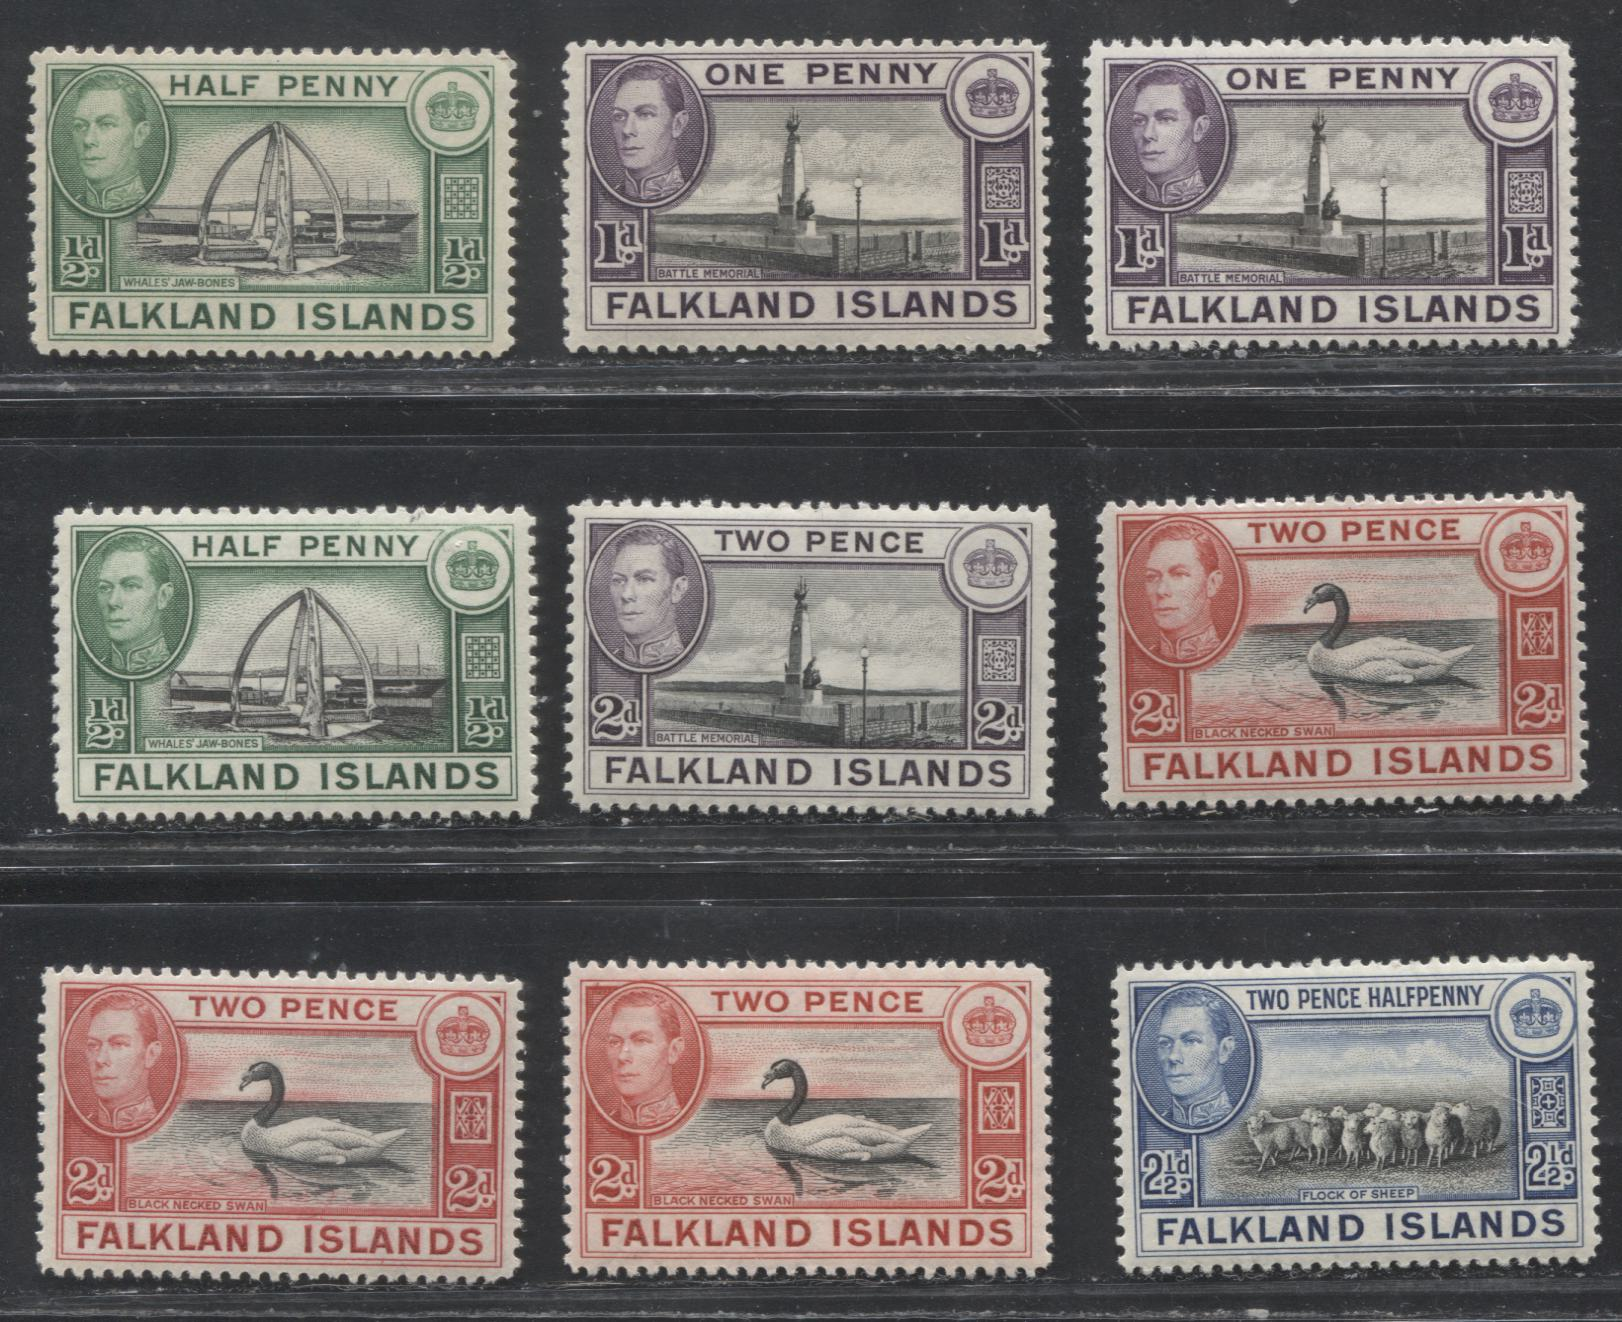 Falkland Islands SG#146-151 1/2d - 2.5d, 1938-1952 Pictorial Definitive Issue, A VFNH Selection of 9 Stamps With 1938 and Wartime Printings